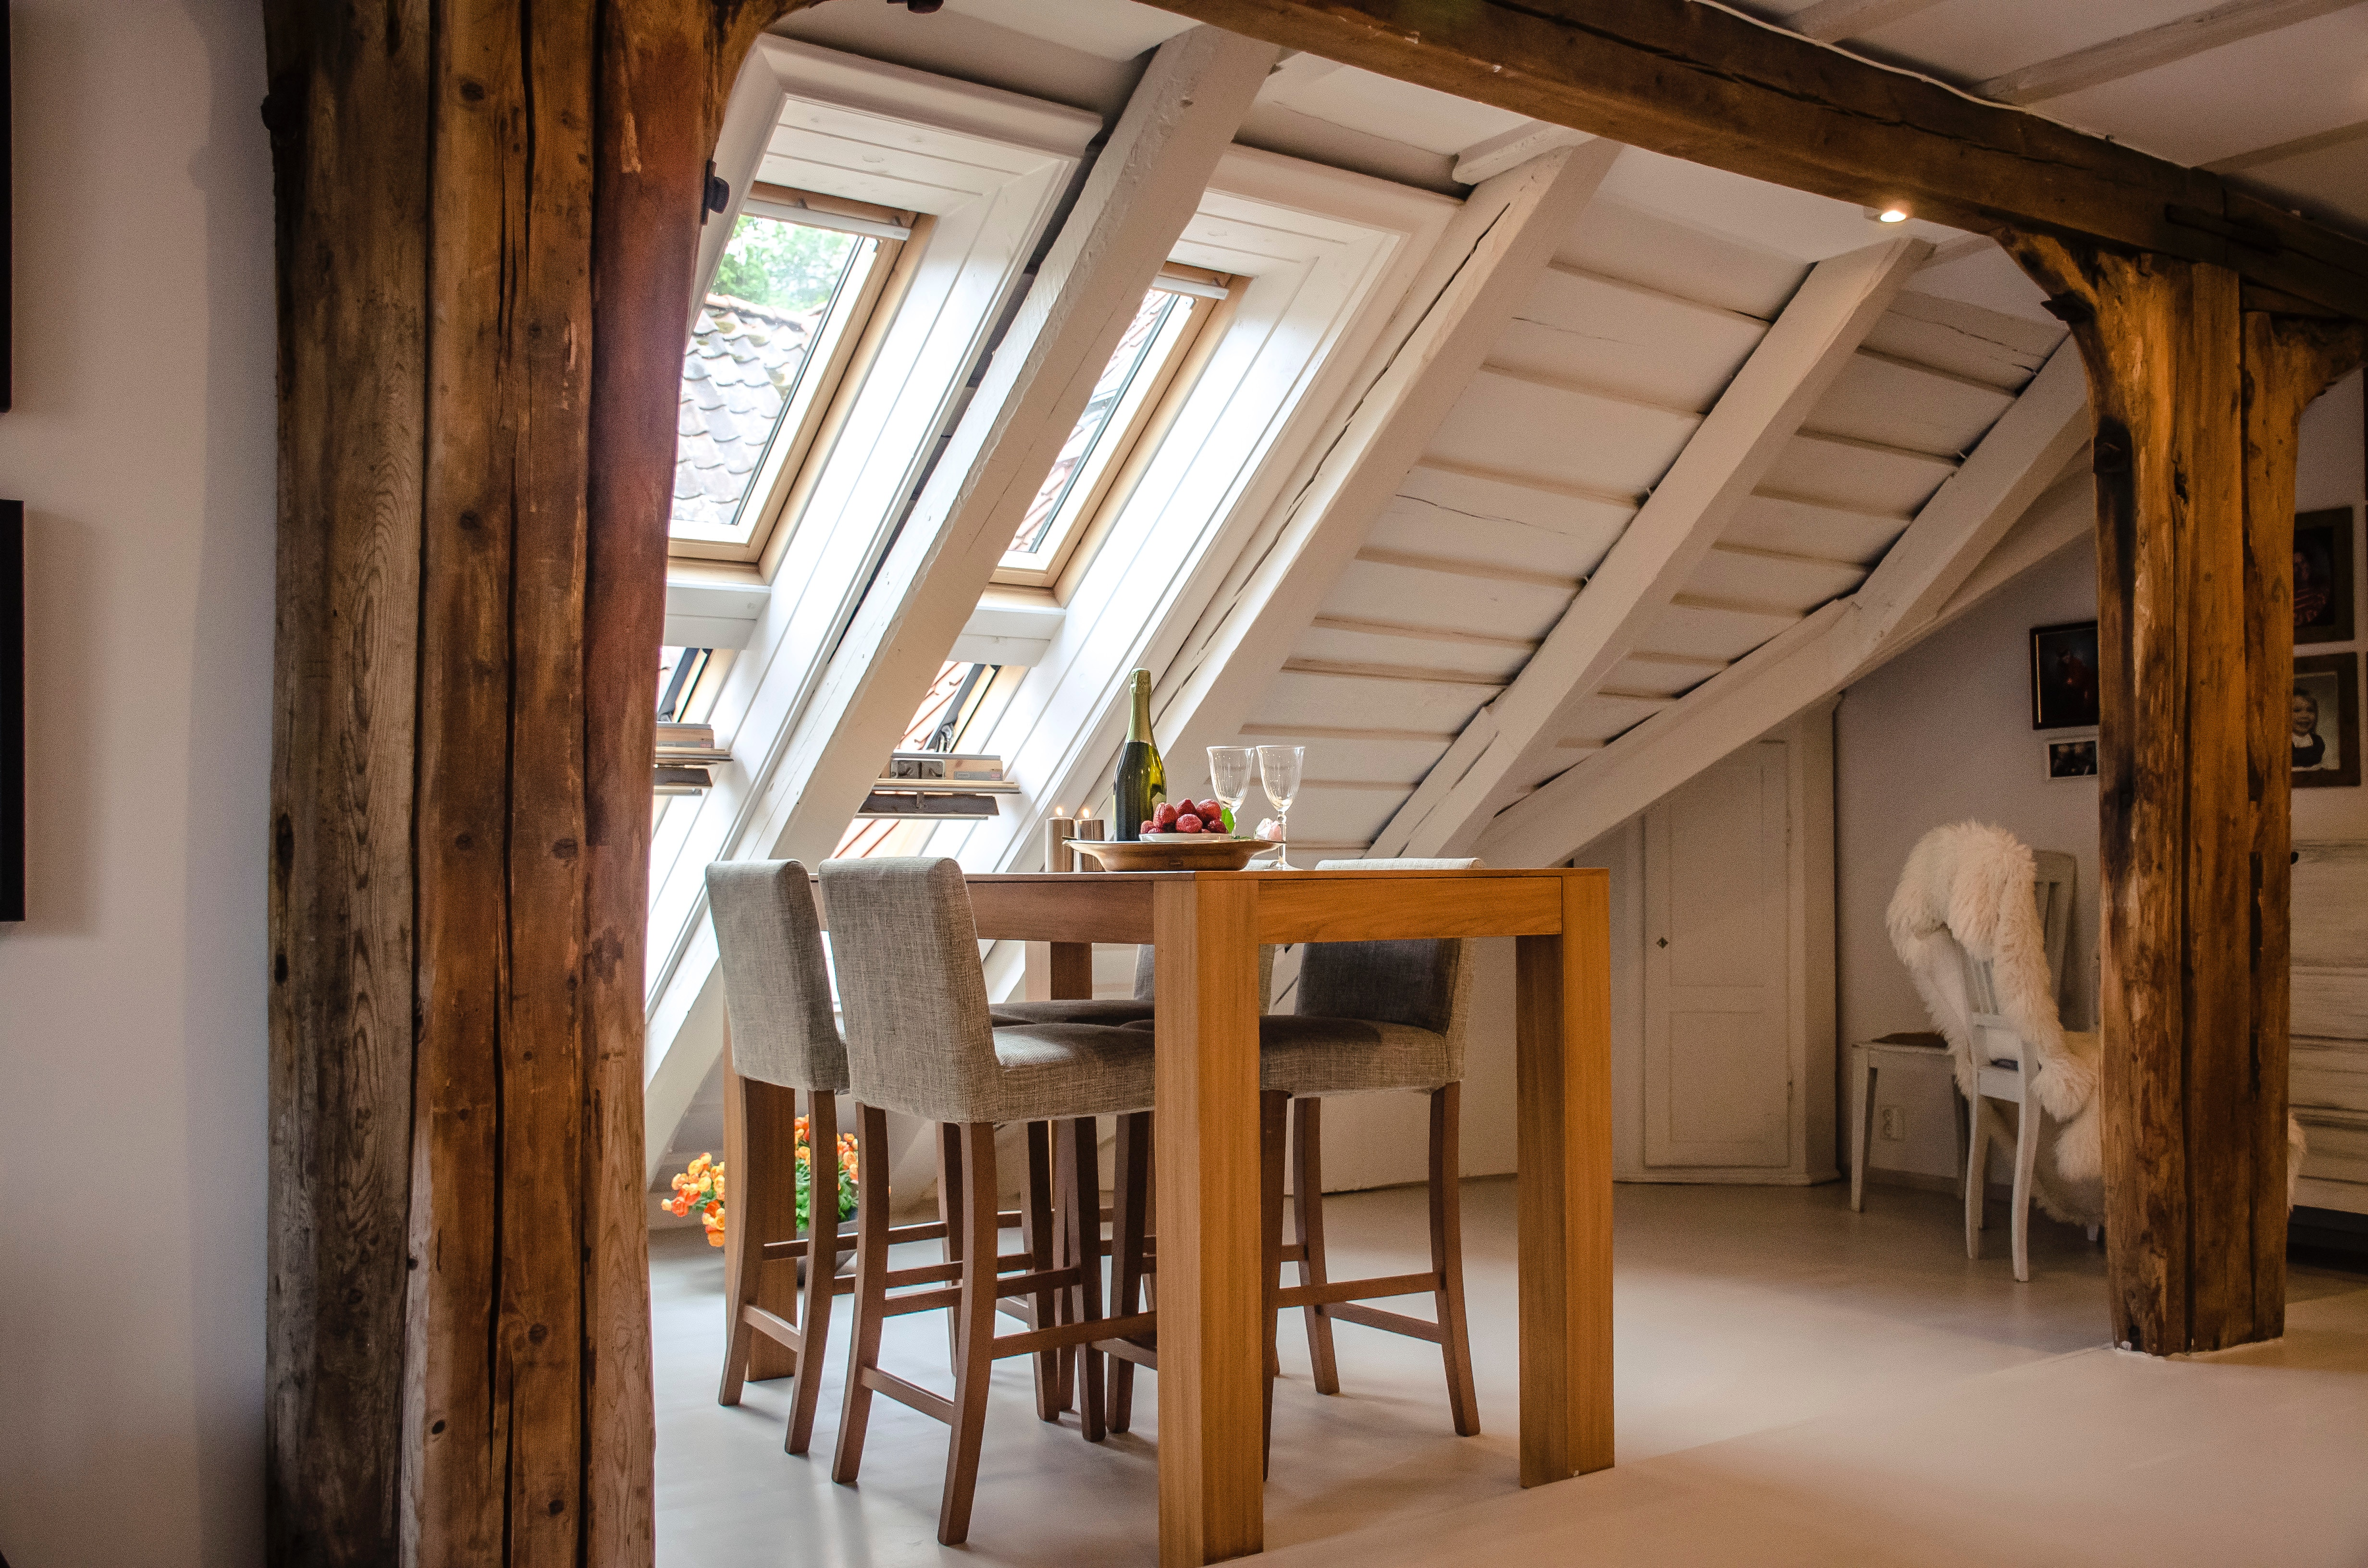 ... How to Use It. Create a cosy craft nook in your loft ... & Loft Space: 10 Great Ideas for How to Use It | | Cosy Home Blog